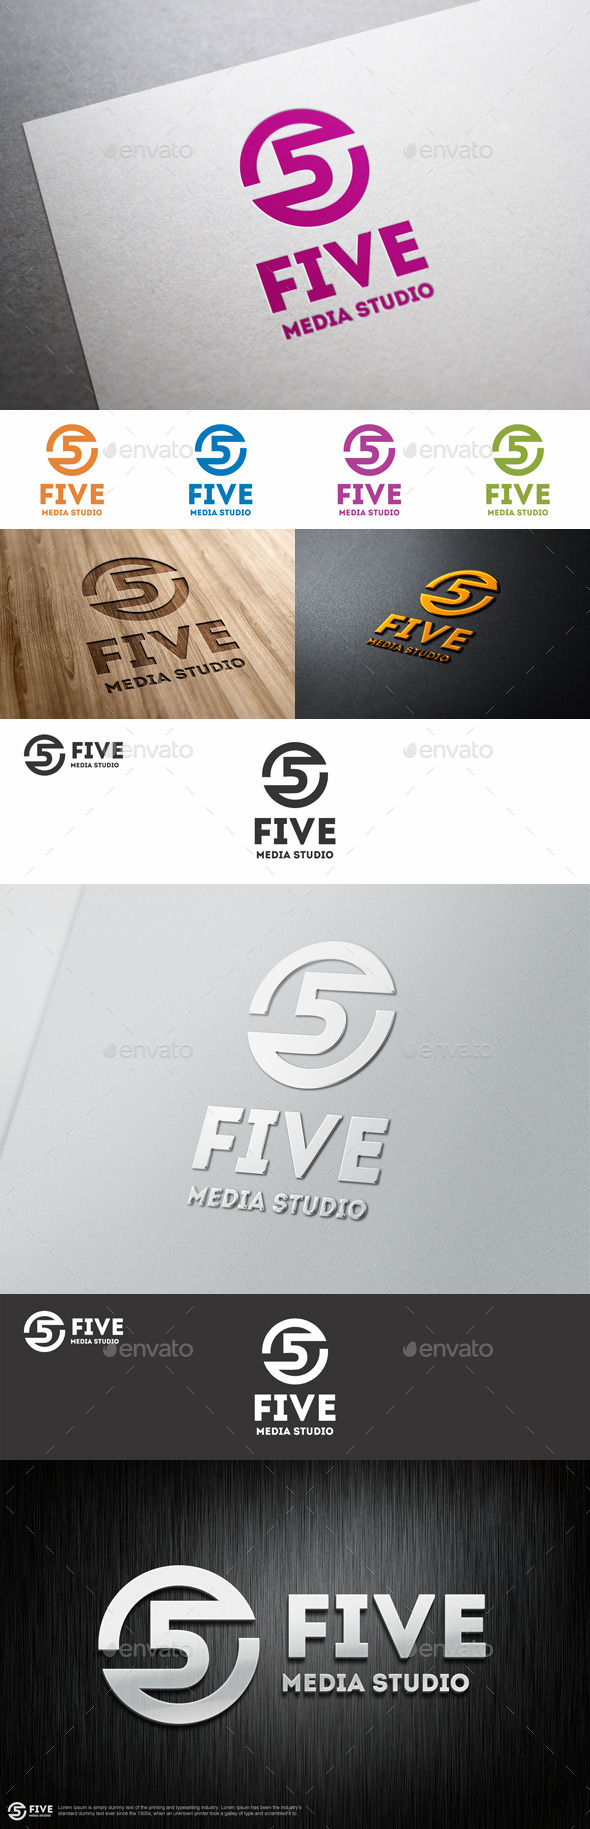 GraphicRiver Five Media Studio Logo Template 8939152